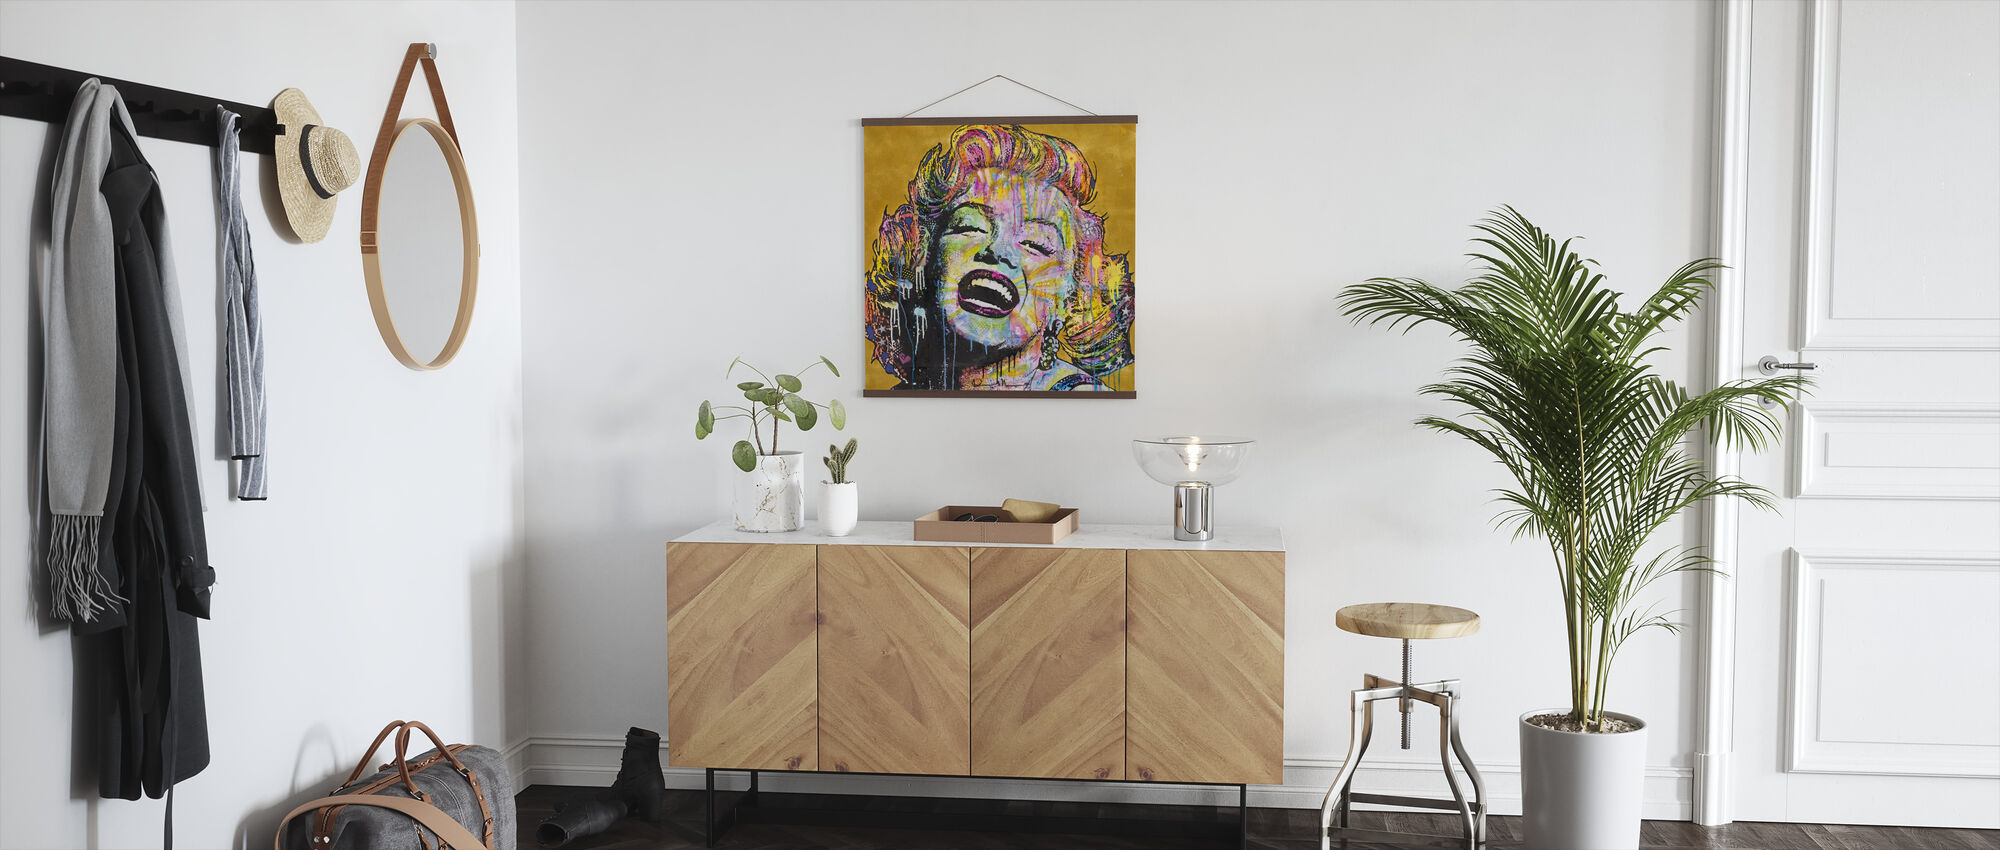 Marilyn Multicolor - Poster - Hallway